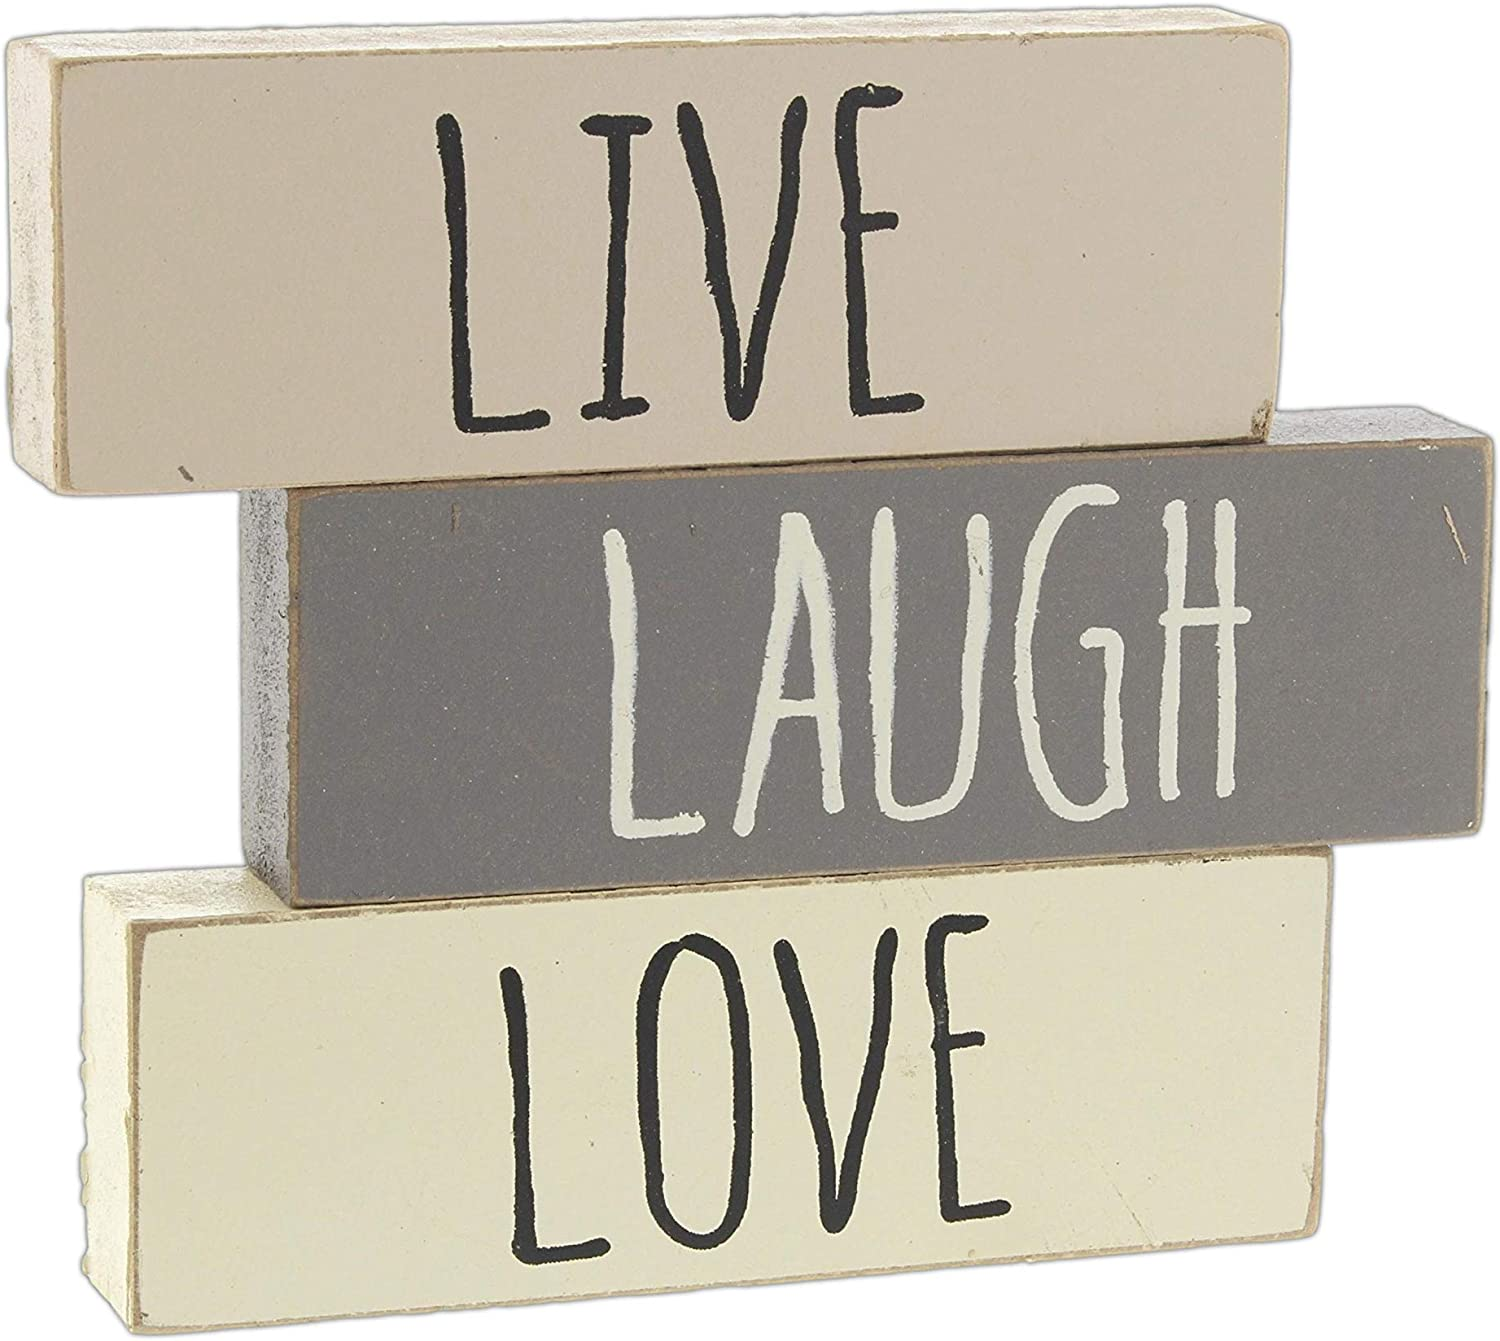 Amazon Com Hearthside Live Laugh Love Set Of 3 Inspirational Wood Block Signs Home Kitchen,Optimize Iphone Storage Photos Not Downloading